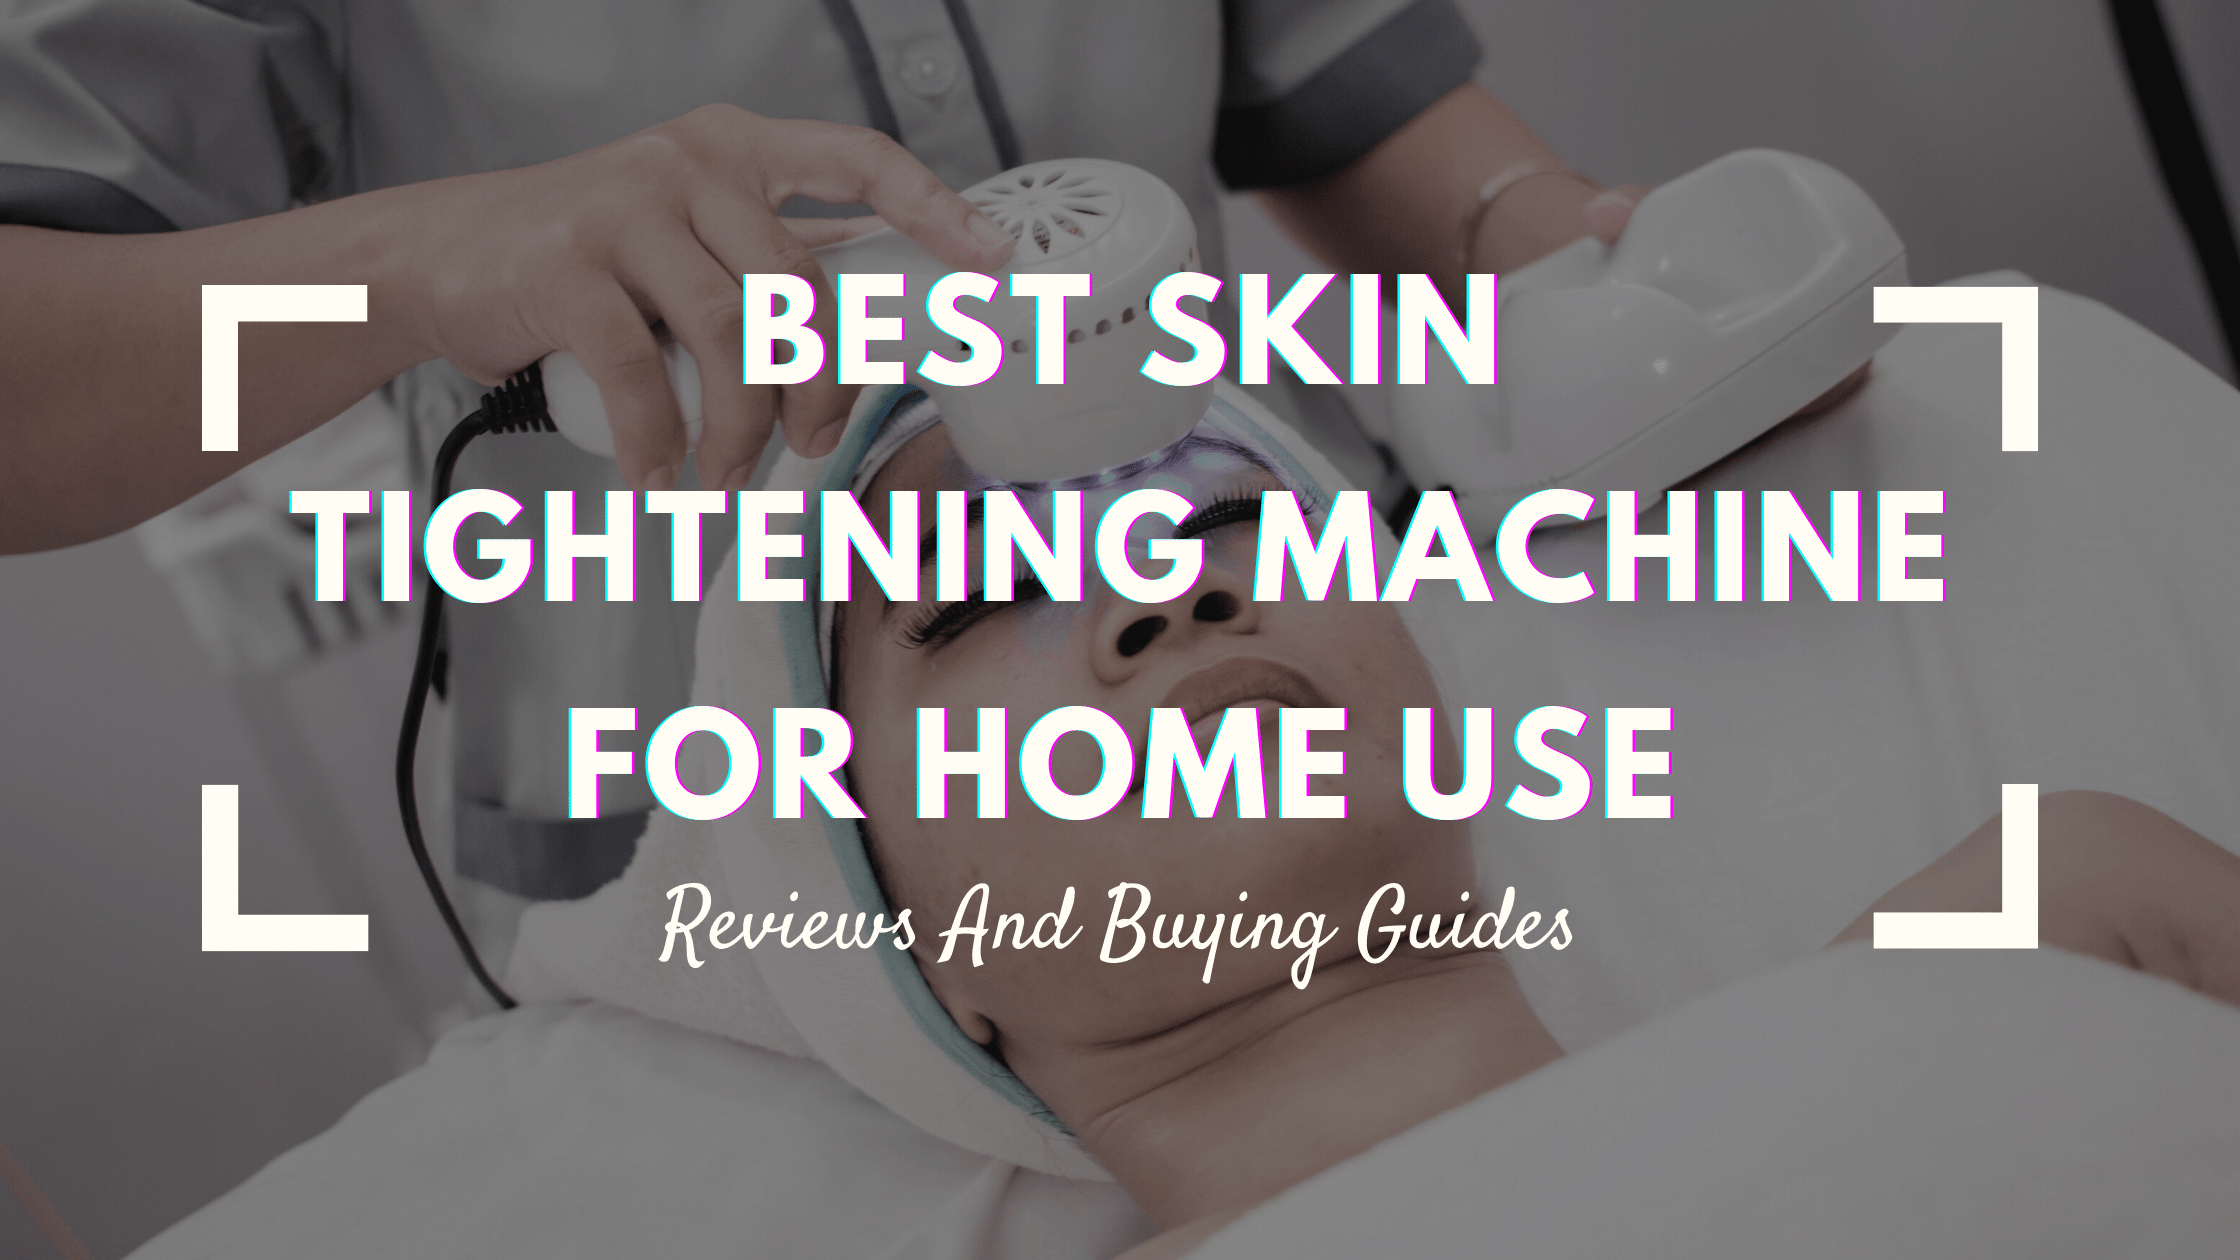 Best skin tightening machine for home use